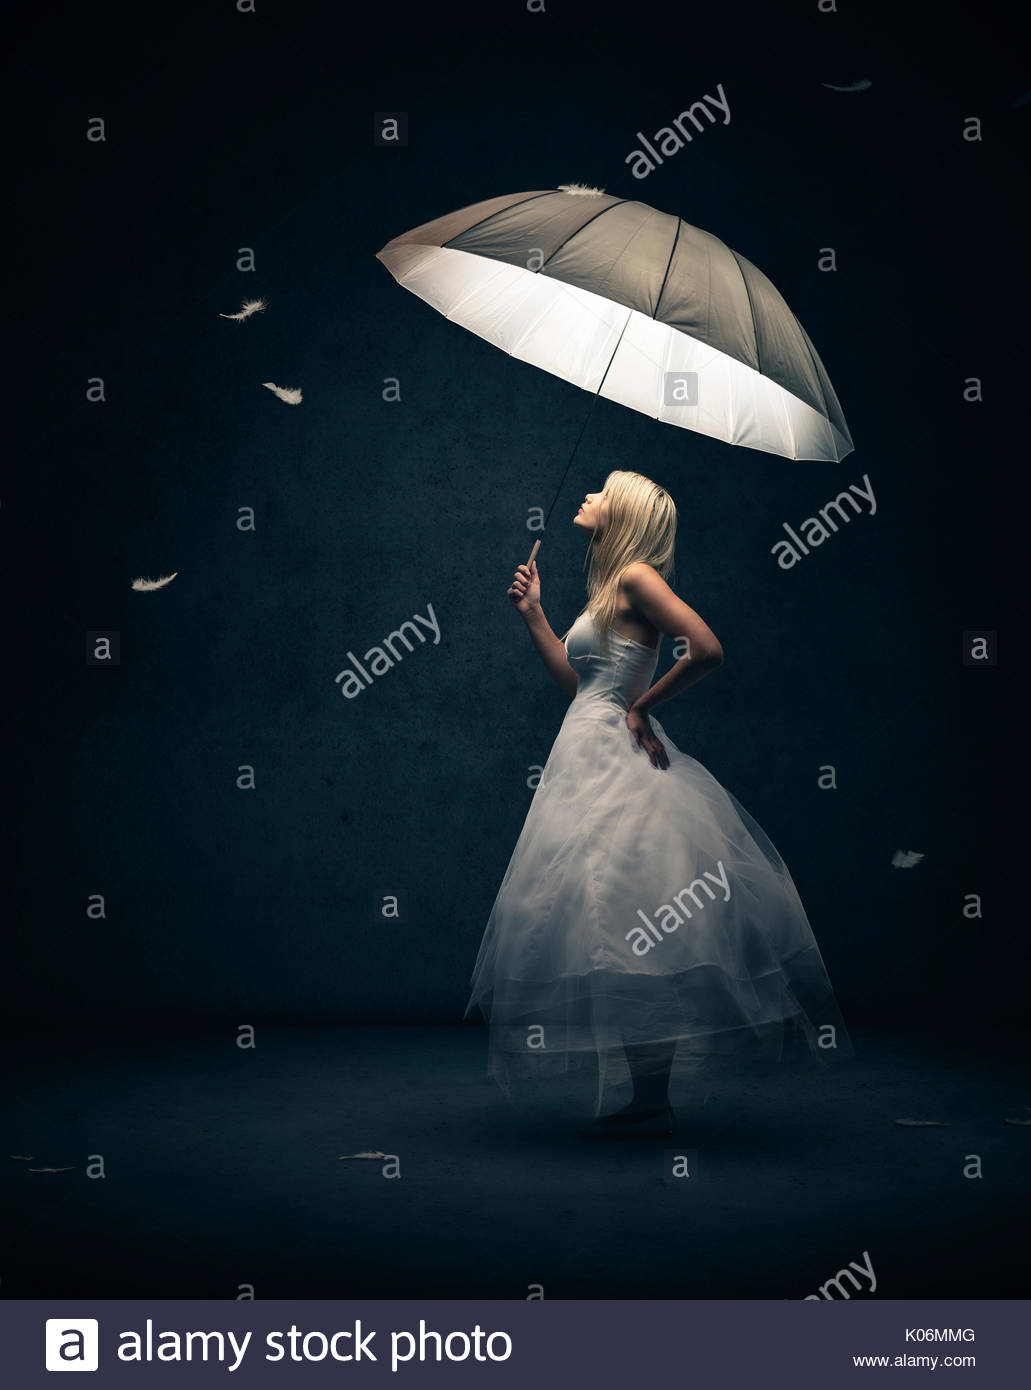 Girl dressed in white with light emitting umbrella looking up at falling feathers - Stock Image